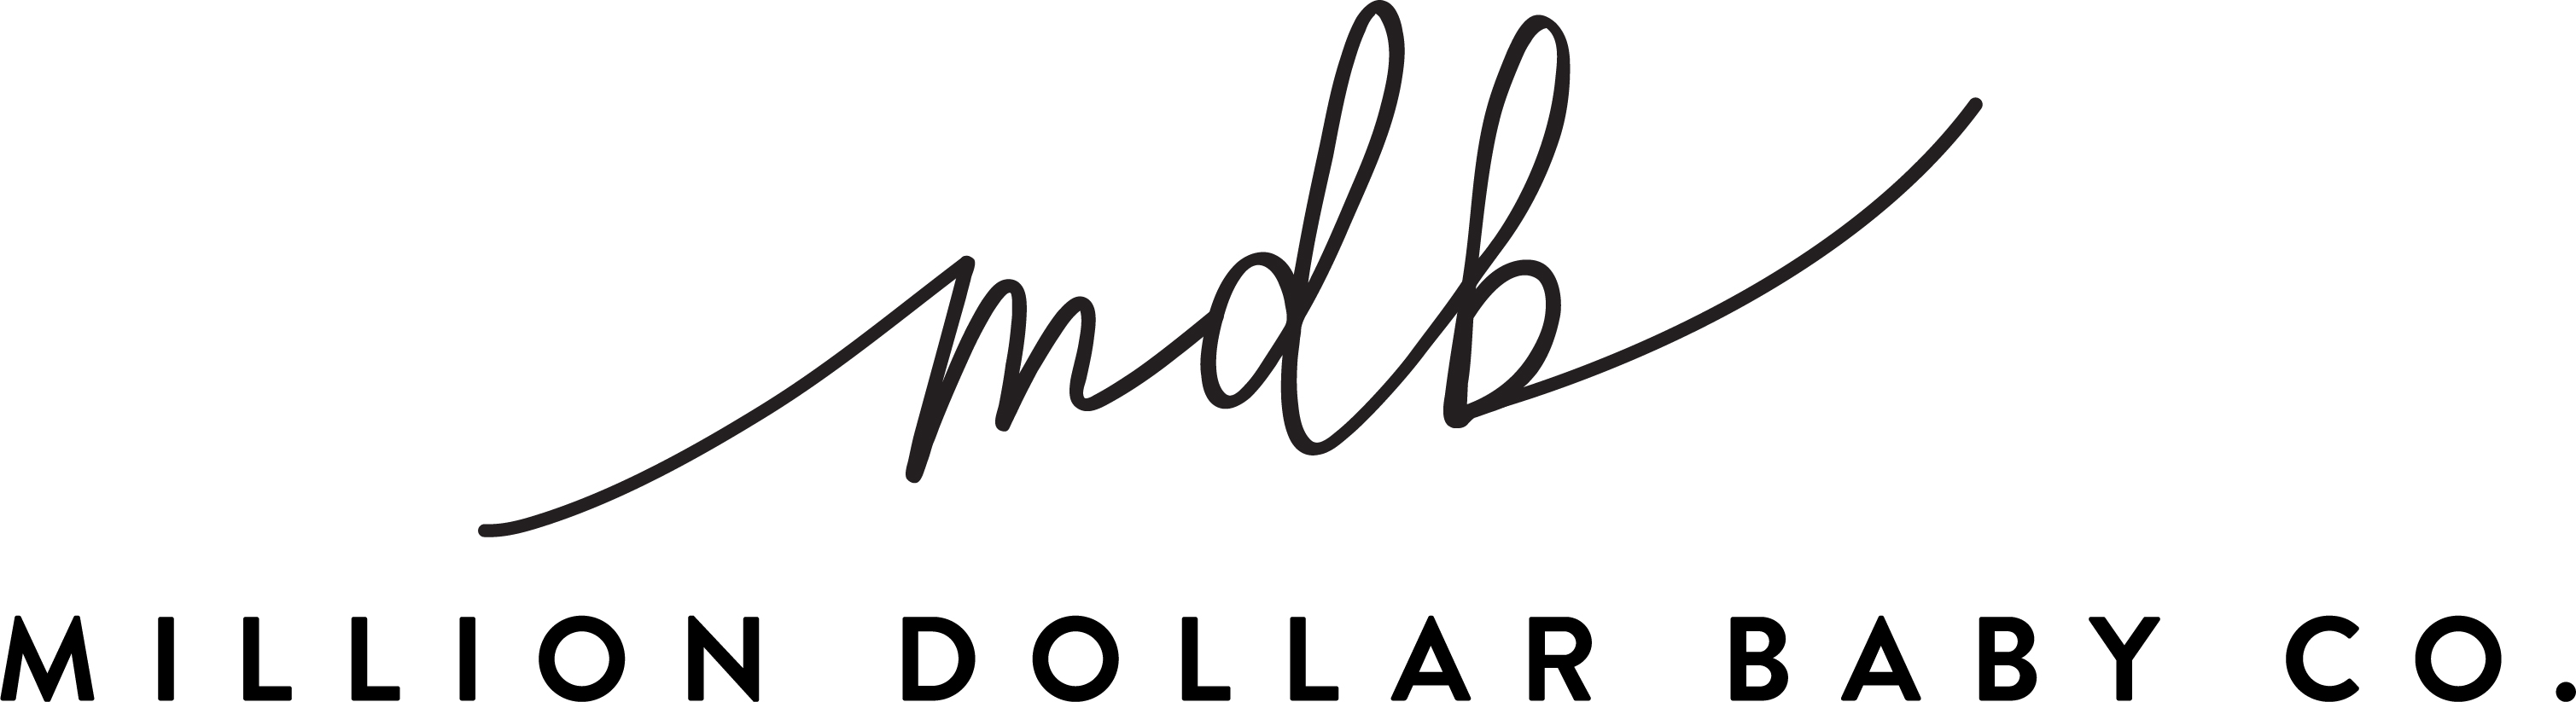 Million Dollar Baby Co. logo